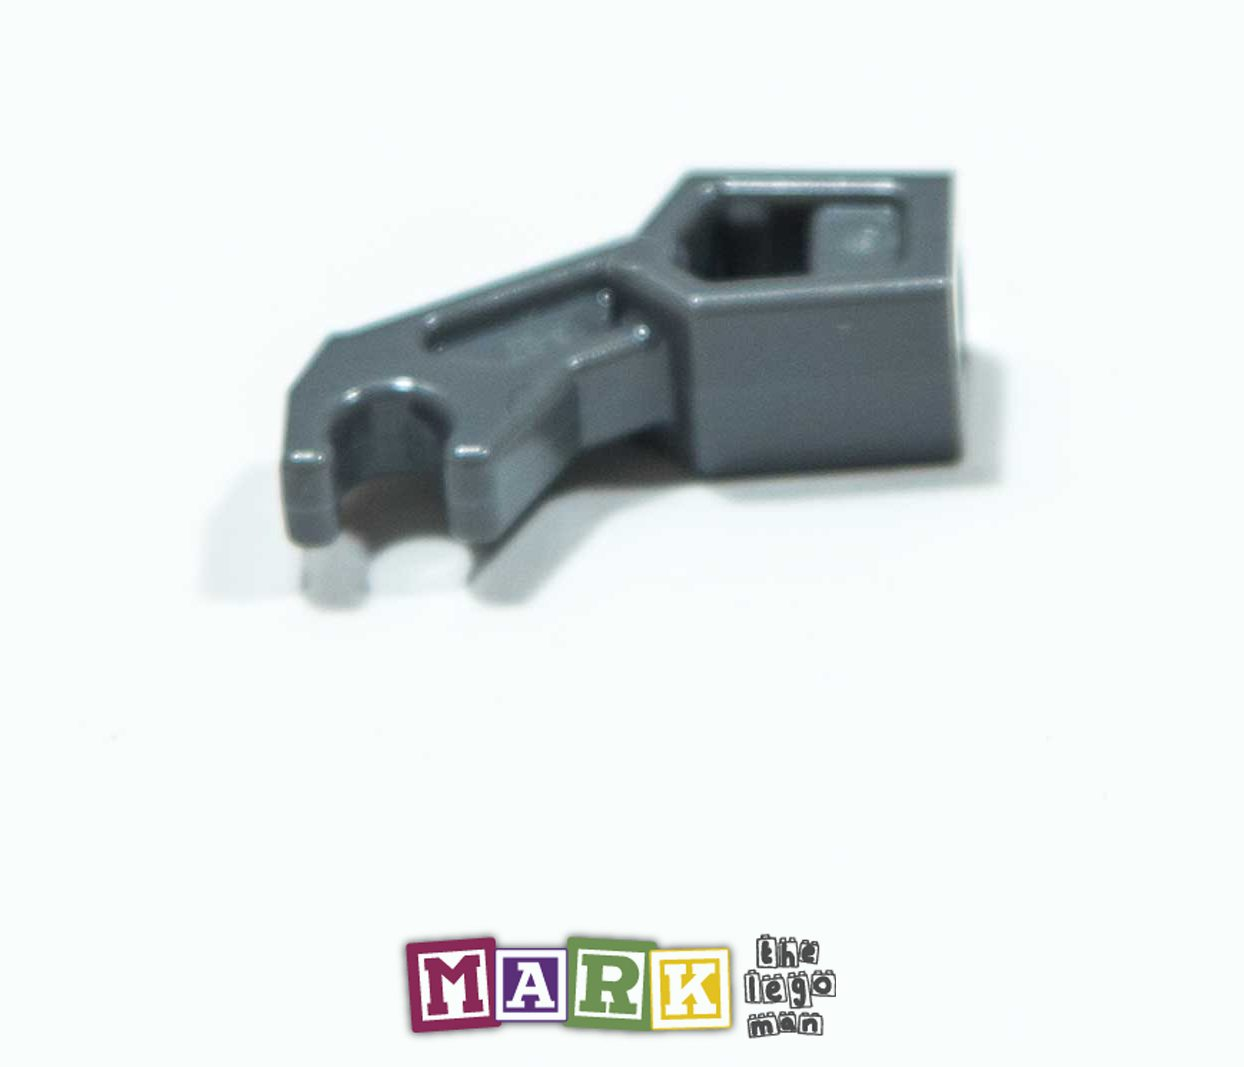 New Lego 76116 Bad Robot Arm 6012812